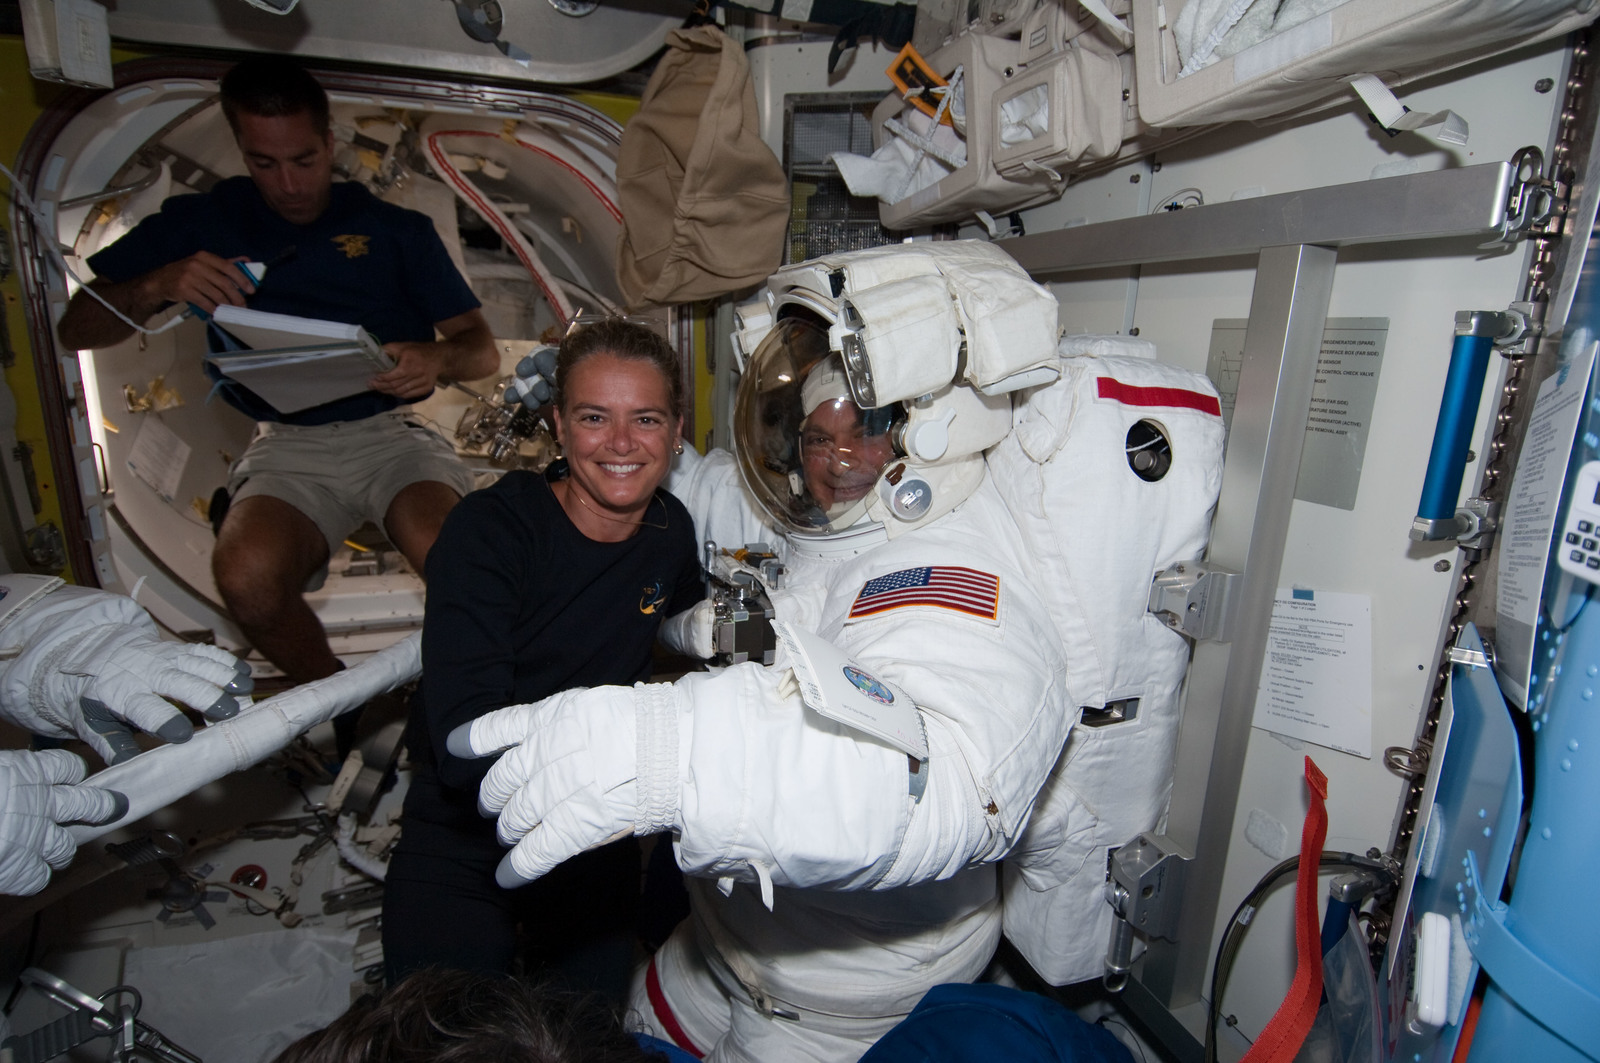 S127E007038 - STS-127 - Payette and Wolf in the A/L during STS-127 / Expedition 20 Joint Operations